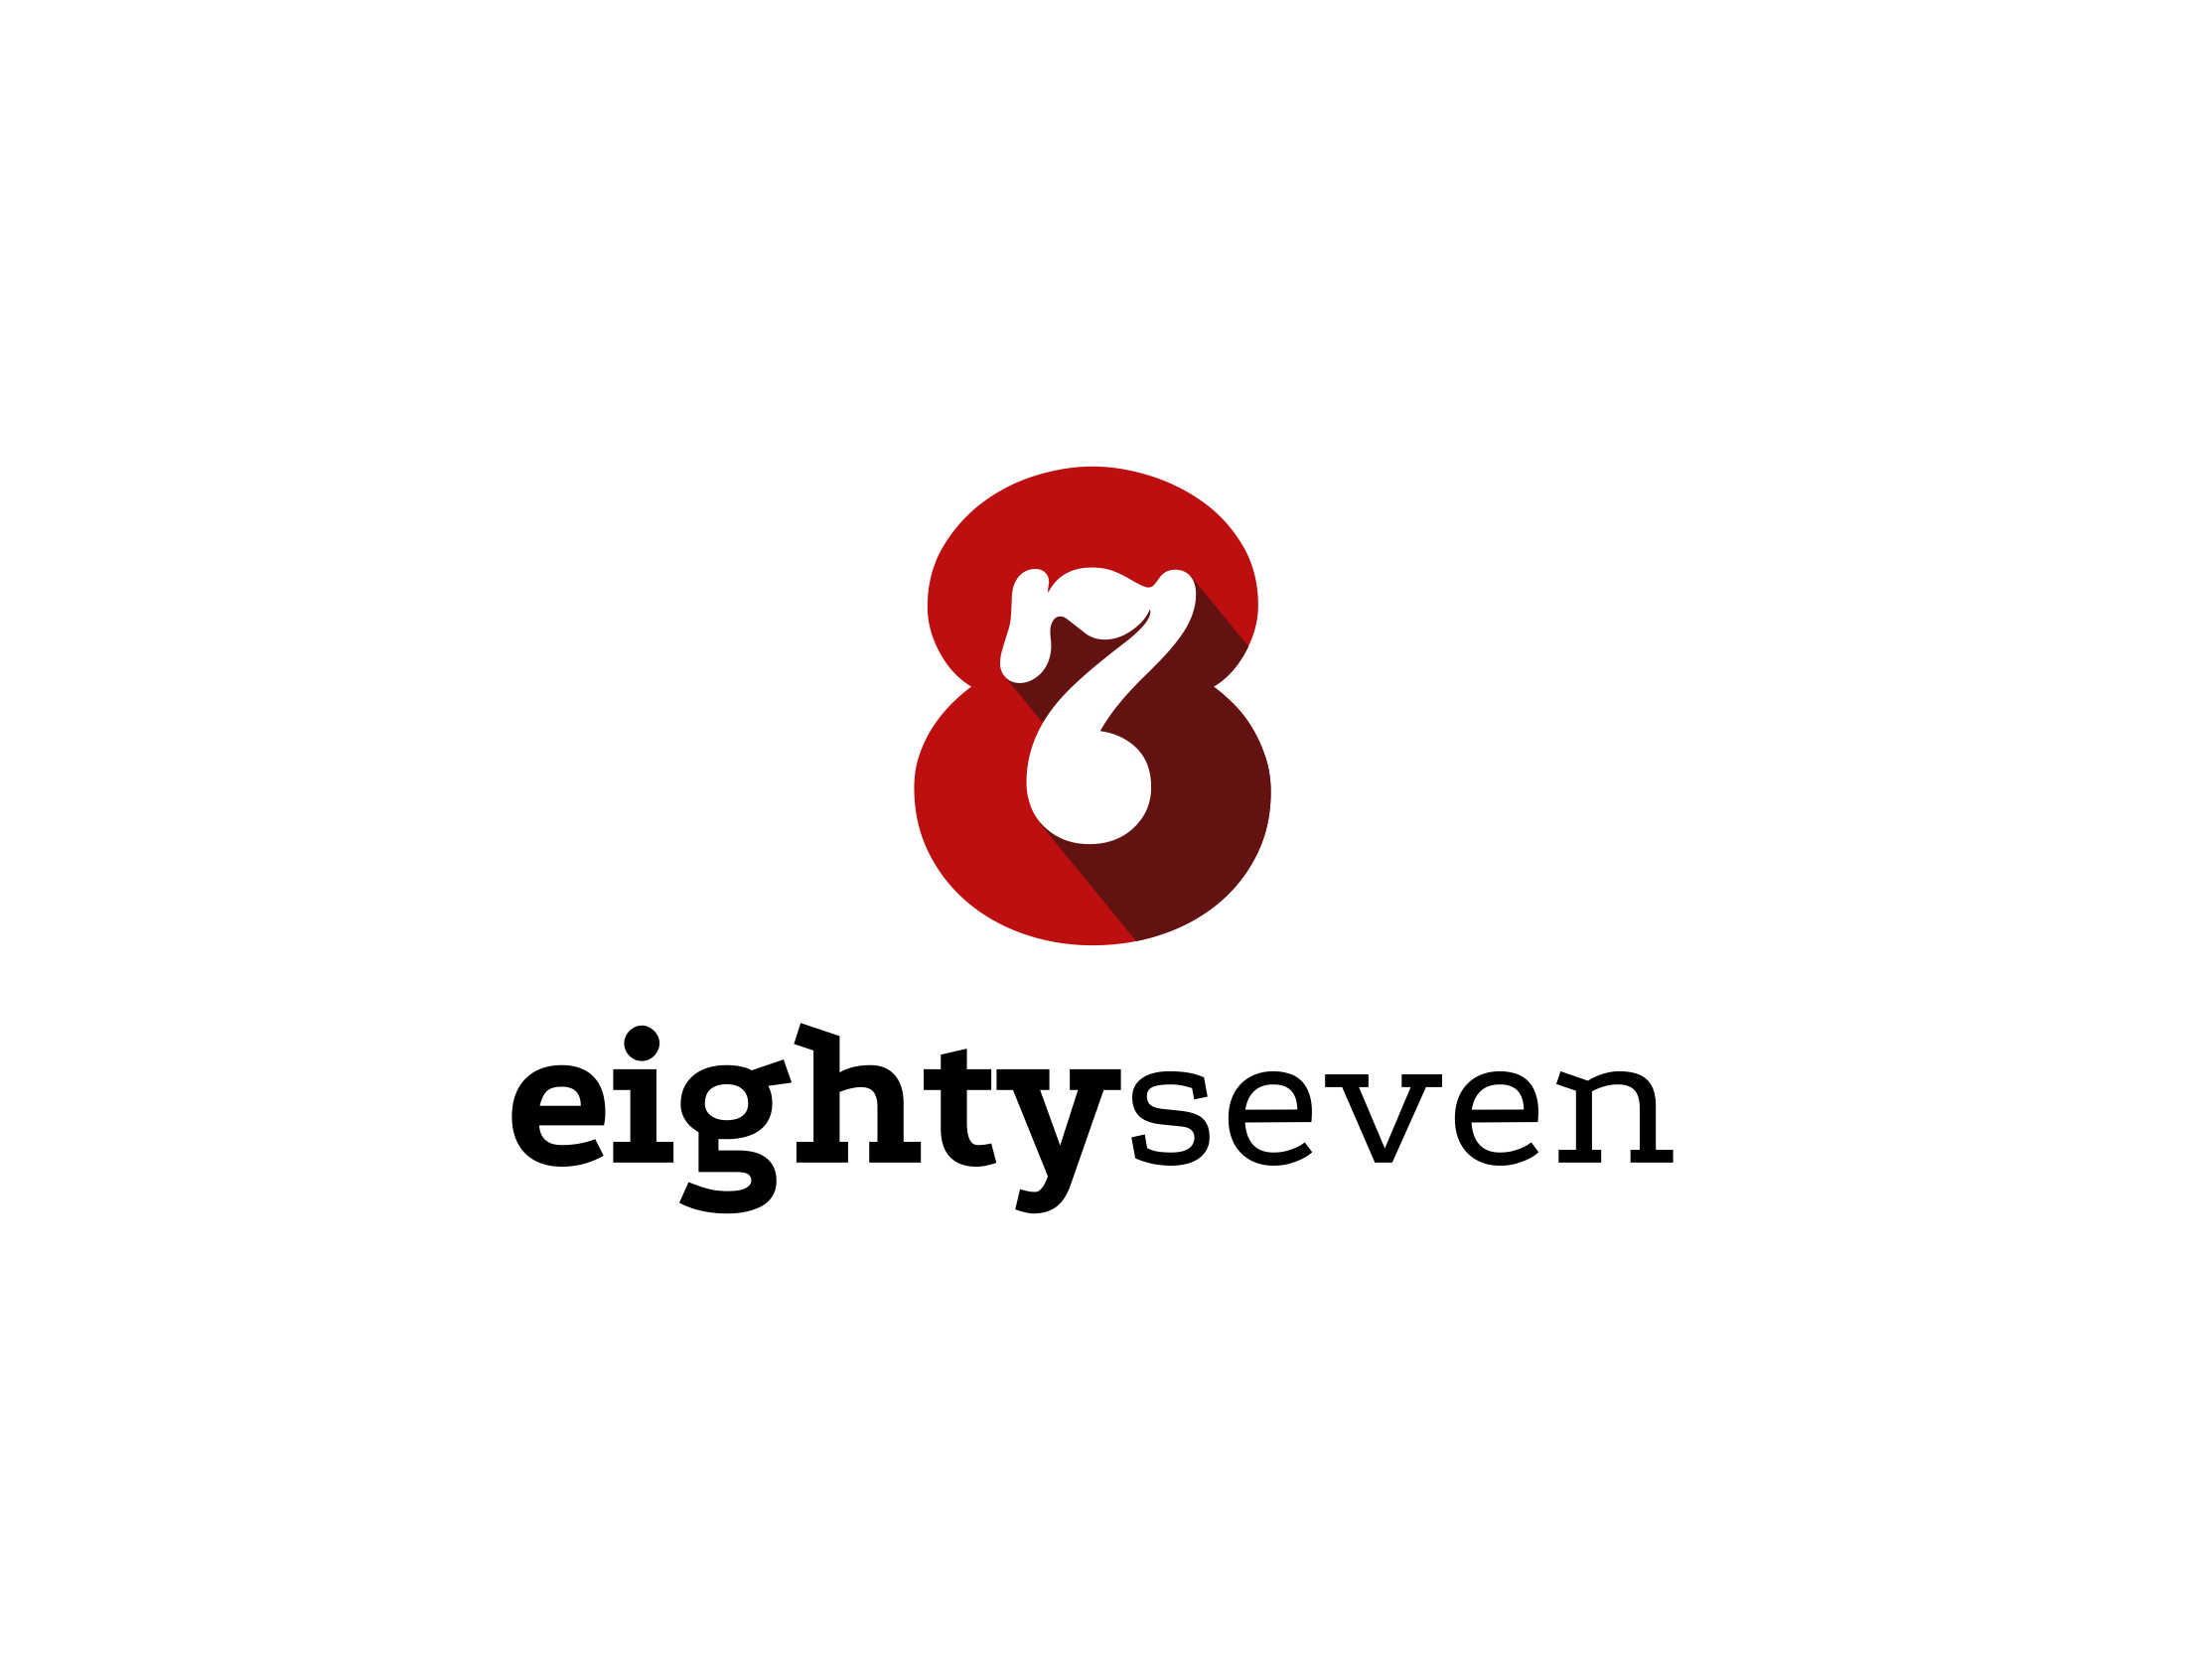 Eighty Seven Pte Ltd